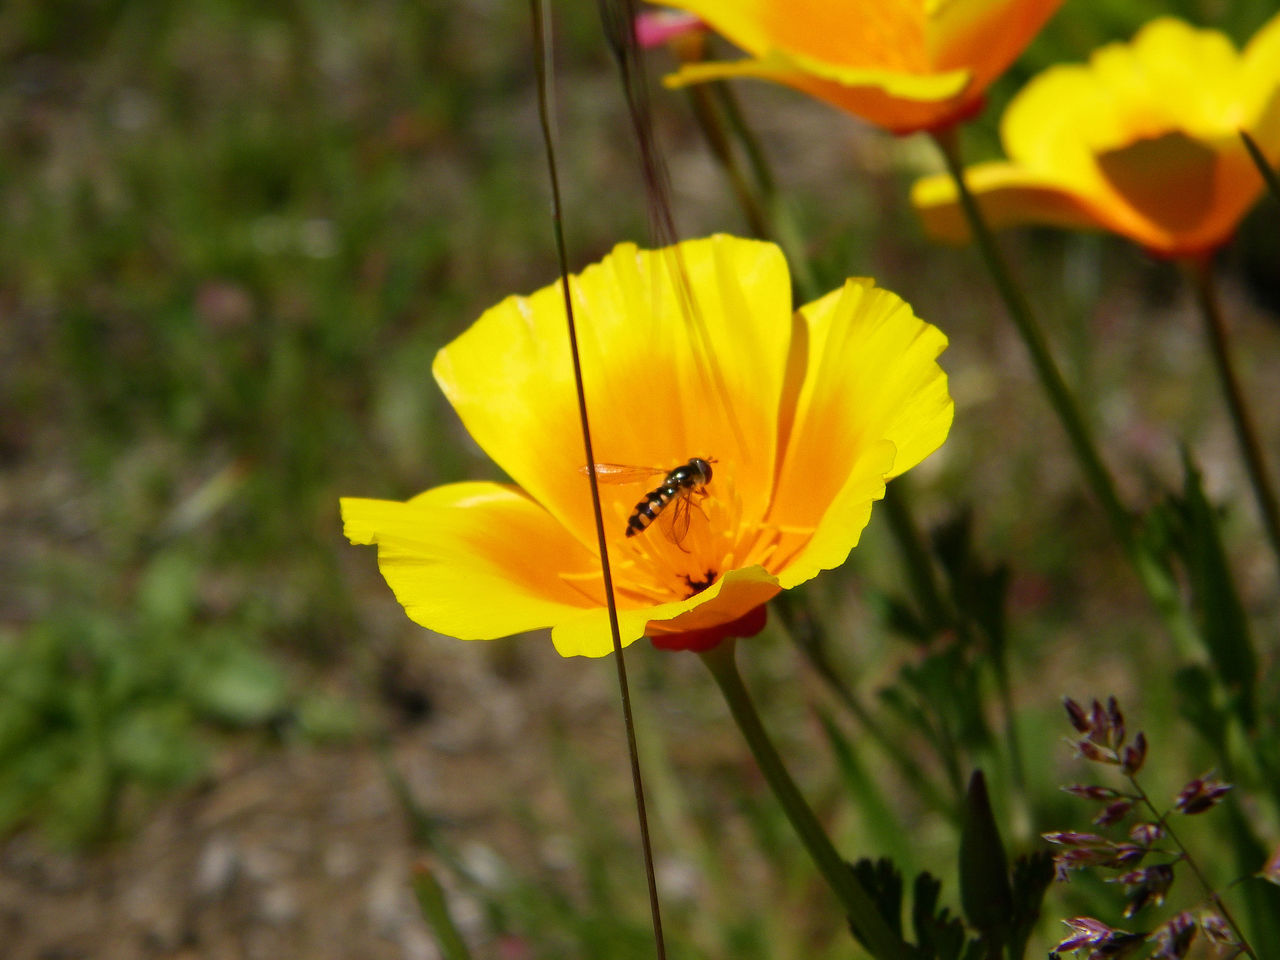 yellow, flower, petal, nature, insect, growth, beauty in nature, one animal, outdoors, no people, flower head, plant, freshness, animals in the wild, fragility, animal themes, bee, blooming, day, close-up